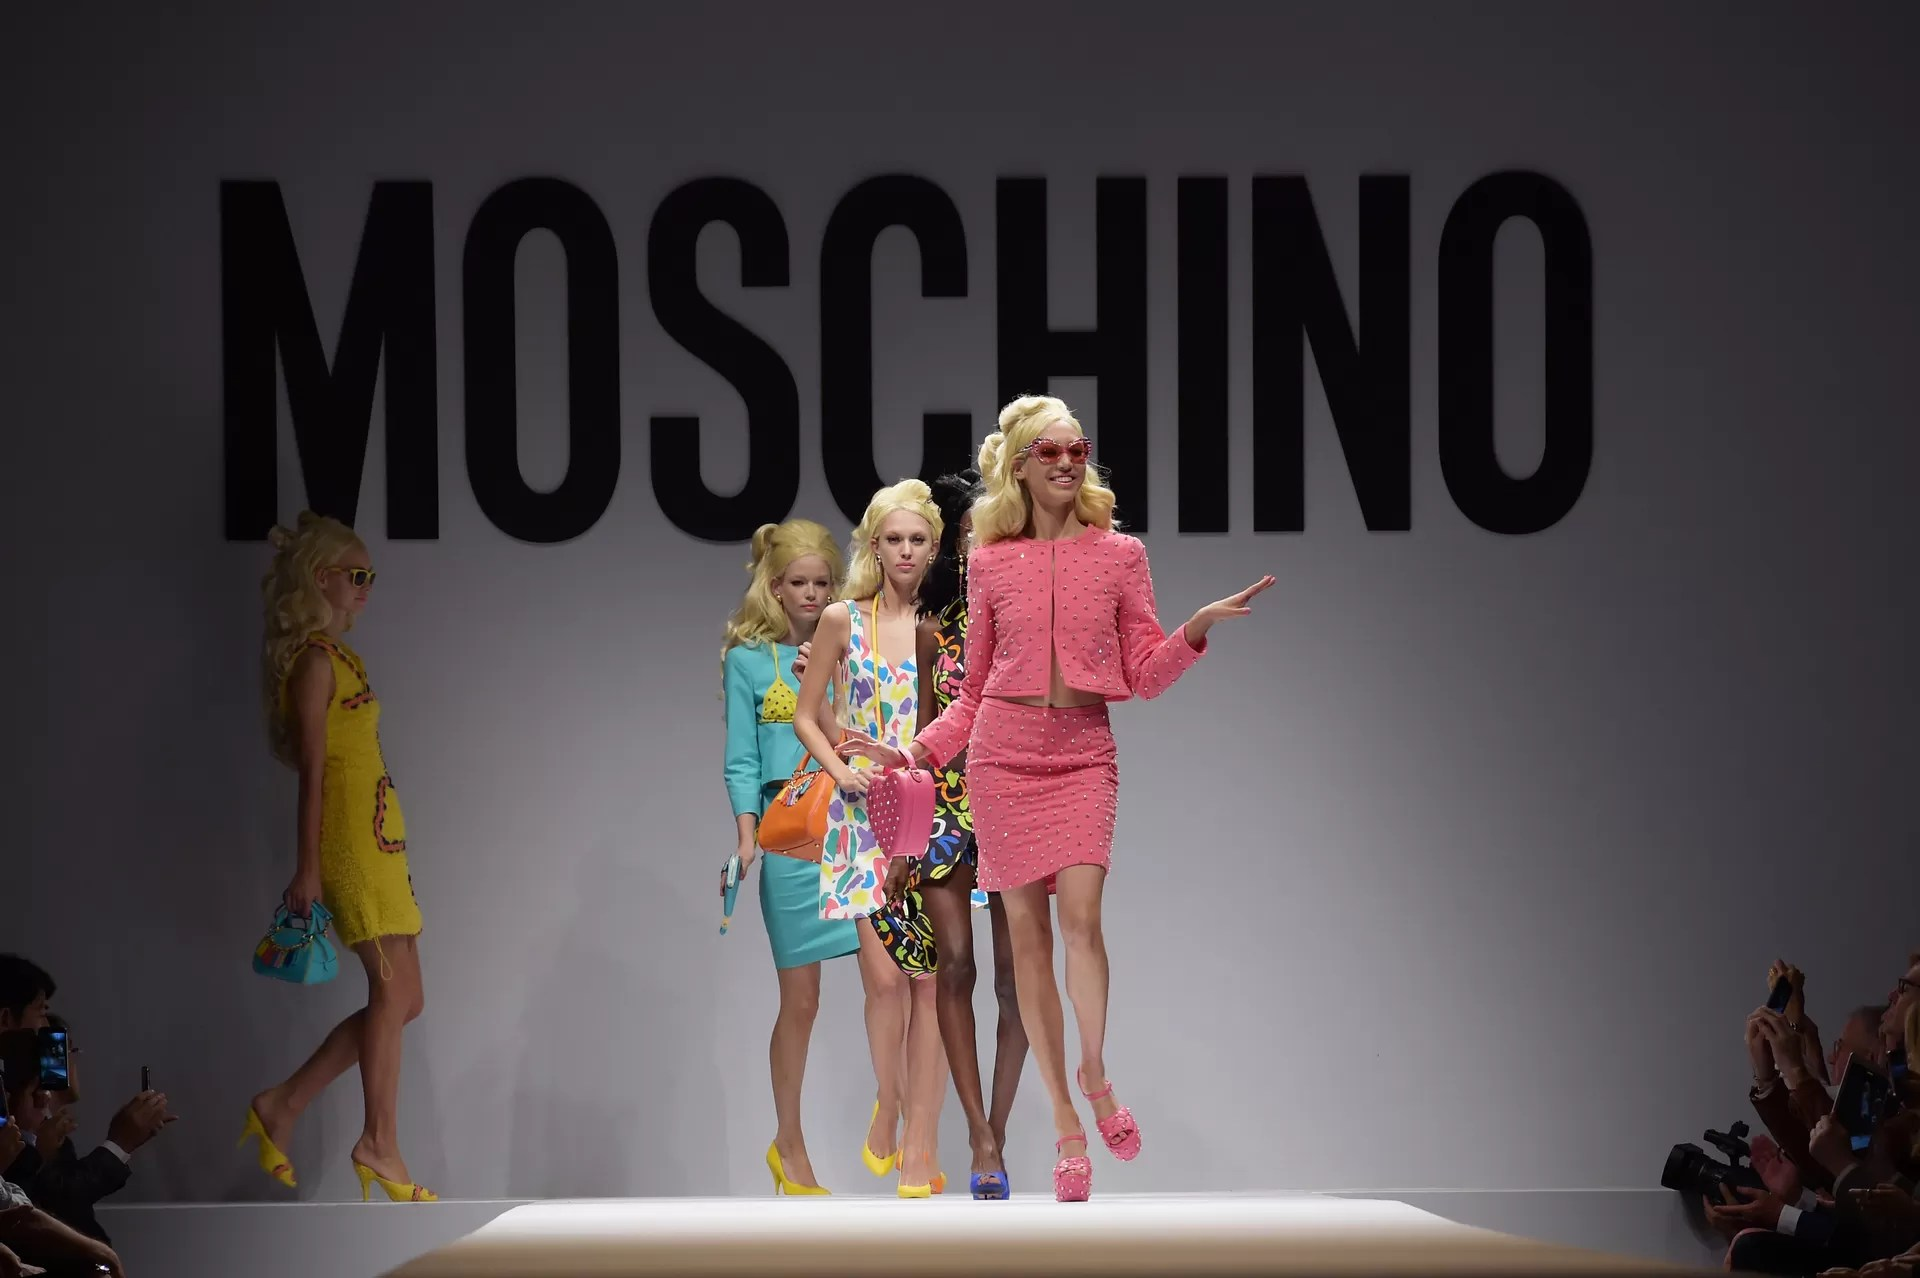 MILAN, ITALY - SEPTEMBER 18:  Models walk the runway during the Moschino show as a part of Milan Fashion Week Womenswear Spring/Summer 2015 on September 18, 2014 in Milan, Italy.  (Photo by Pier Marco Tacca/Getty Images) (Foto: Getty Images)